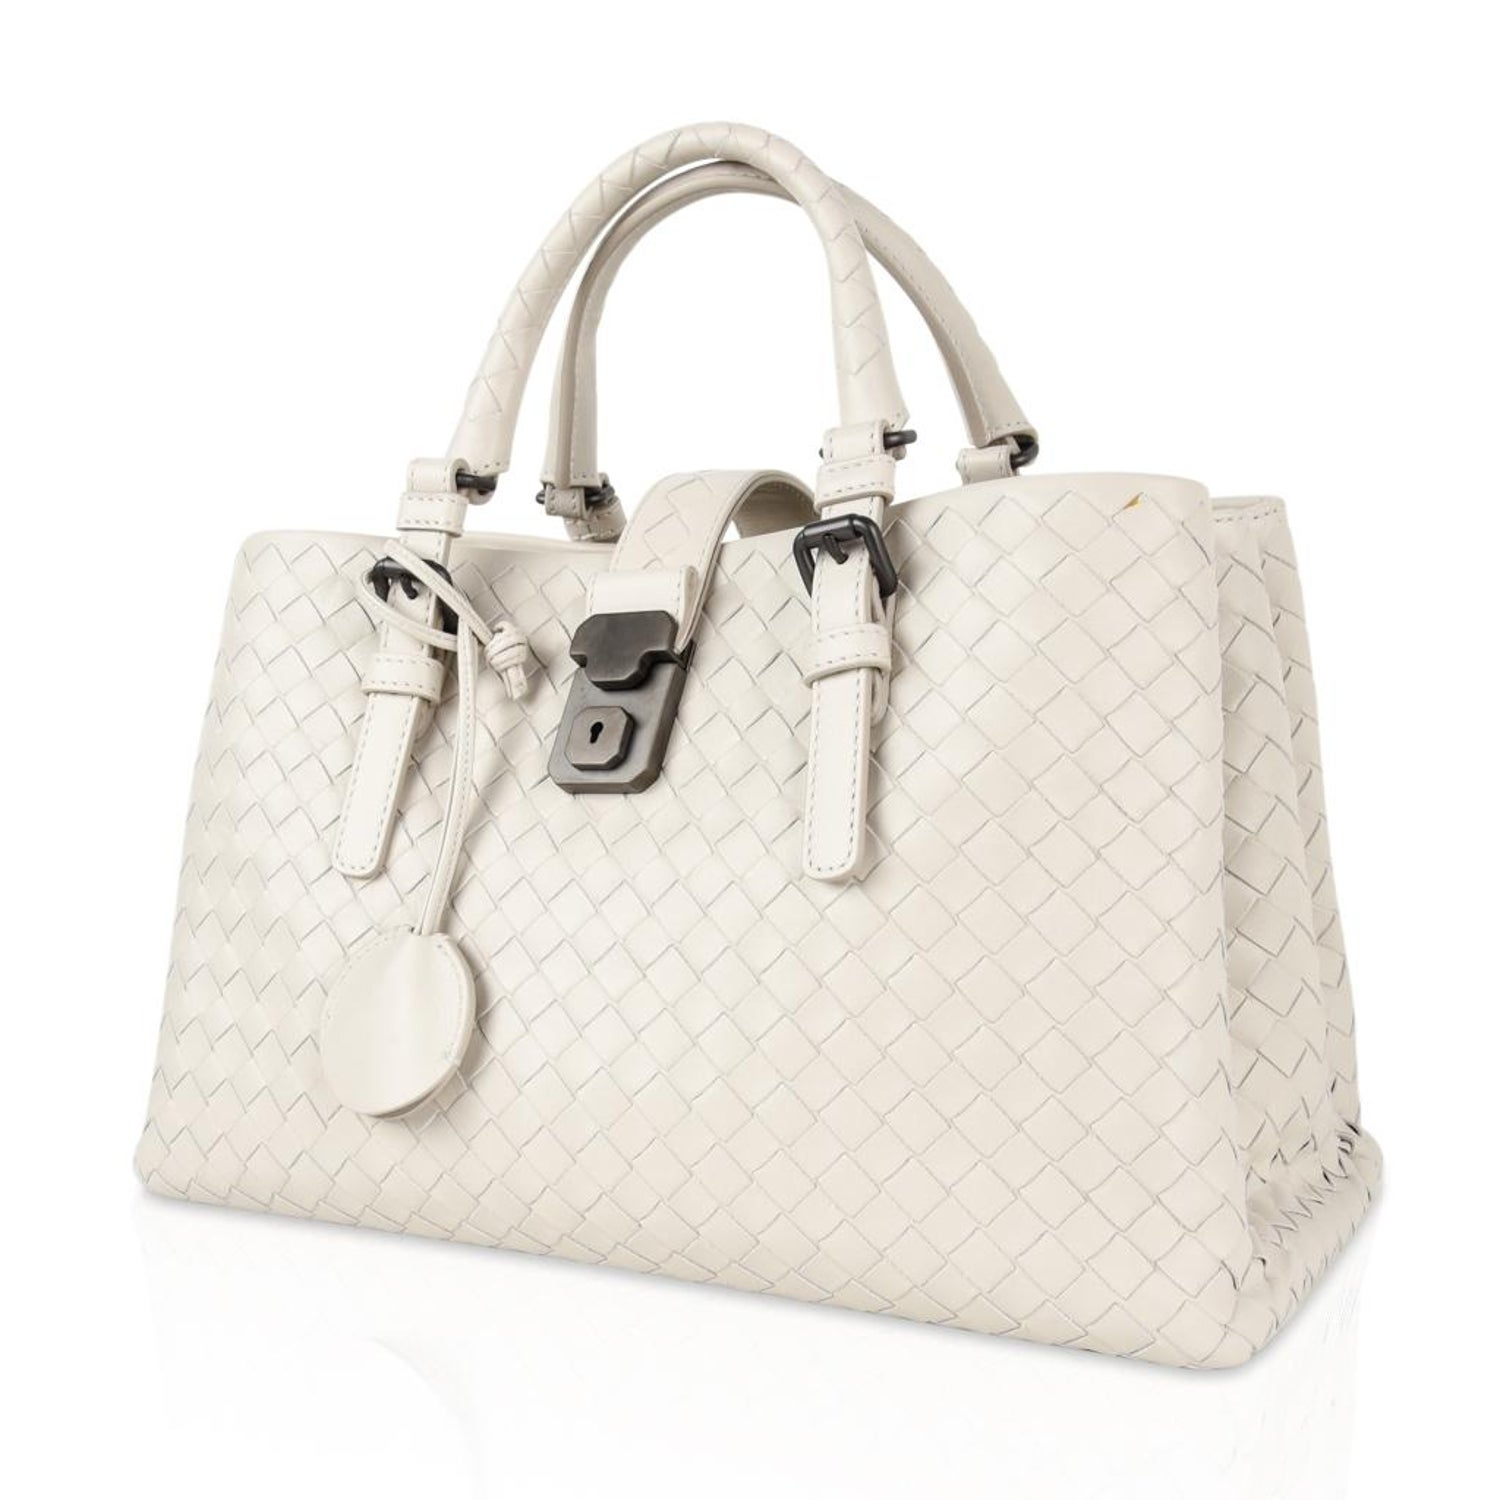 5353b15df1 Bottega Veneta Intrecciato Bag Small Roma Leather Tote Detachable Shoulder  Strap For Sale at 1stdibs